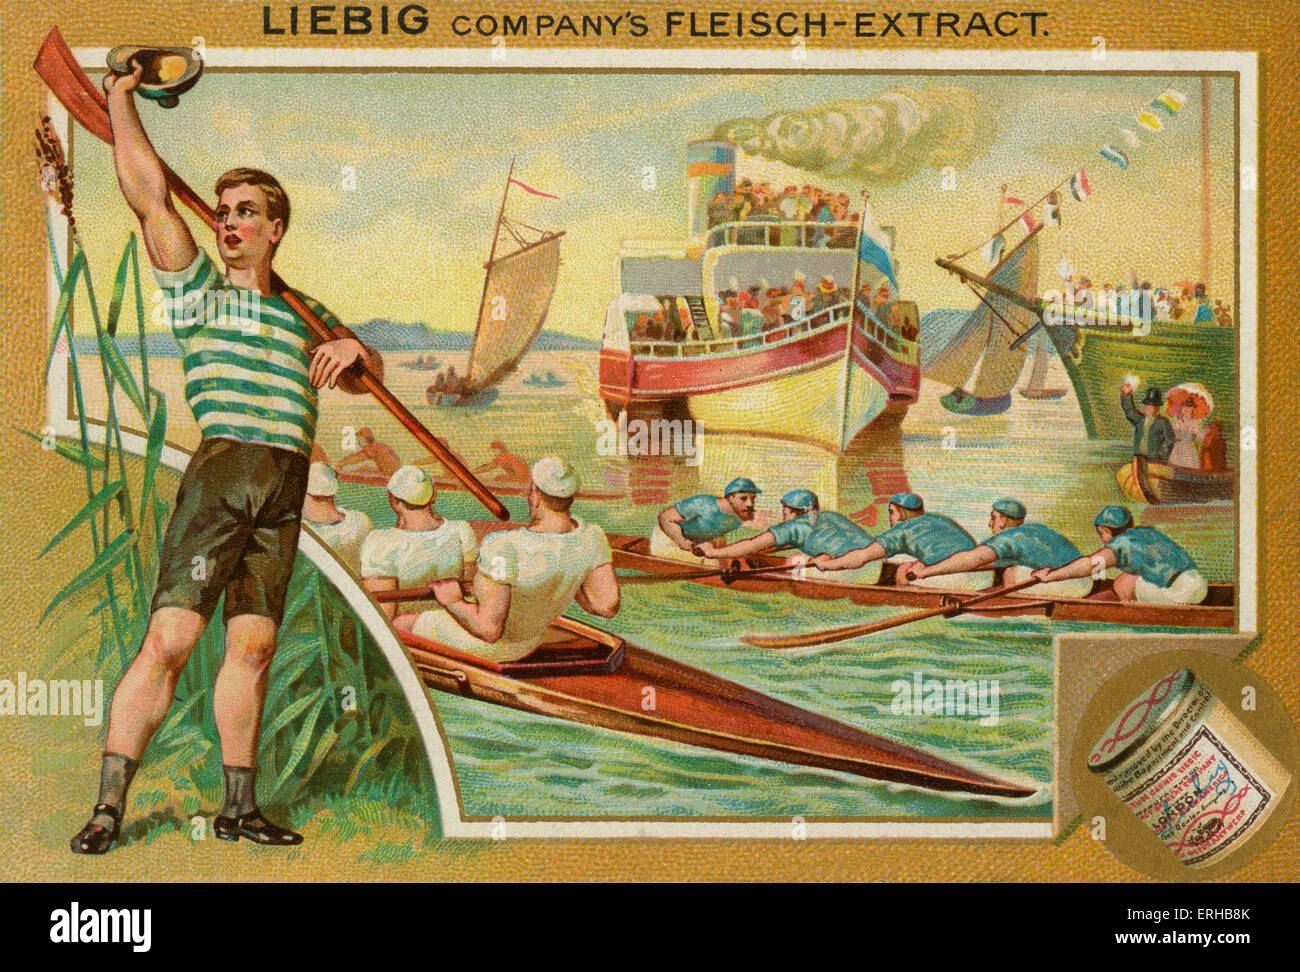 A rowing race . Liebig card, Sports, 1896. - Stock Image